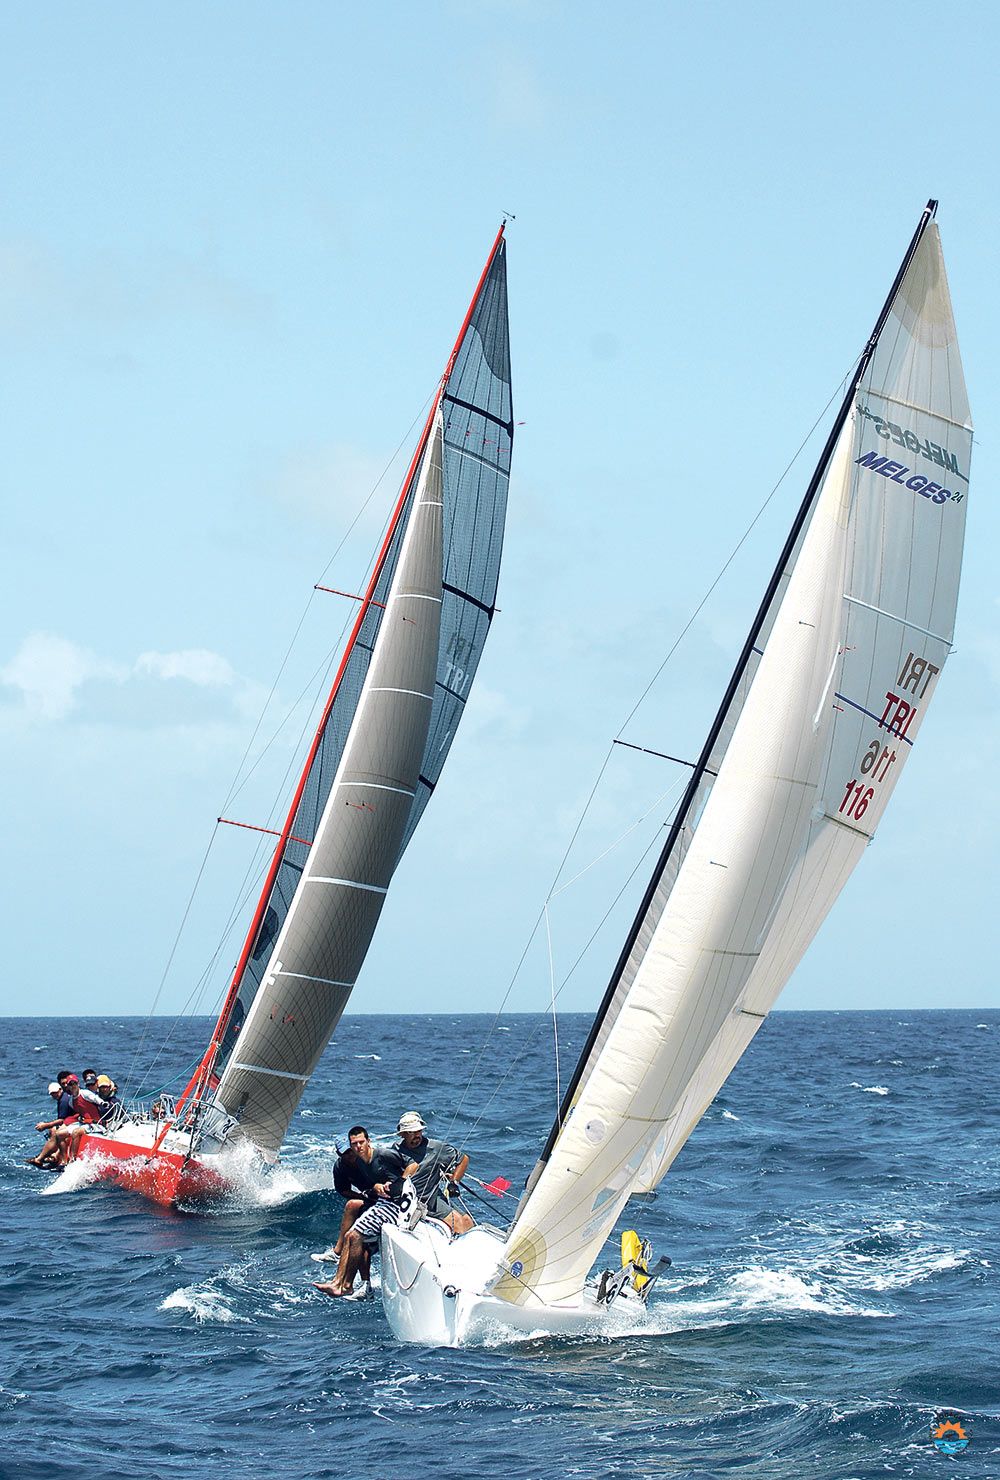 Sailing in Tobago